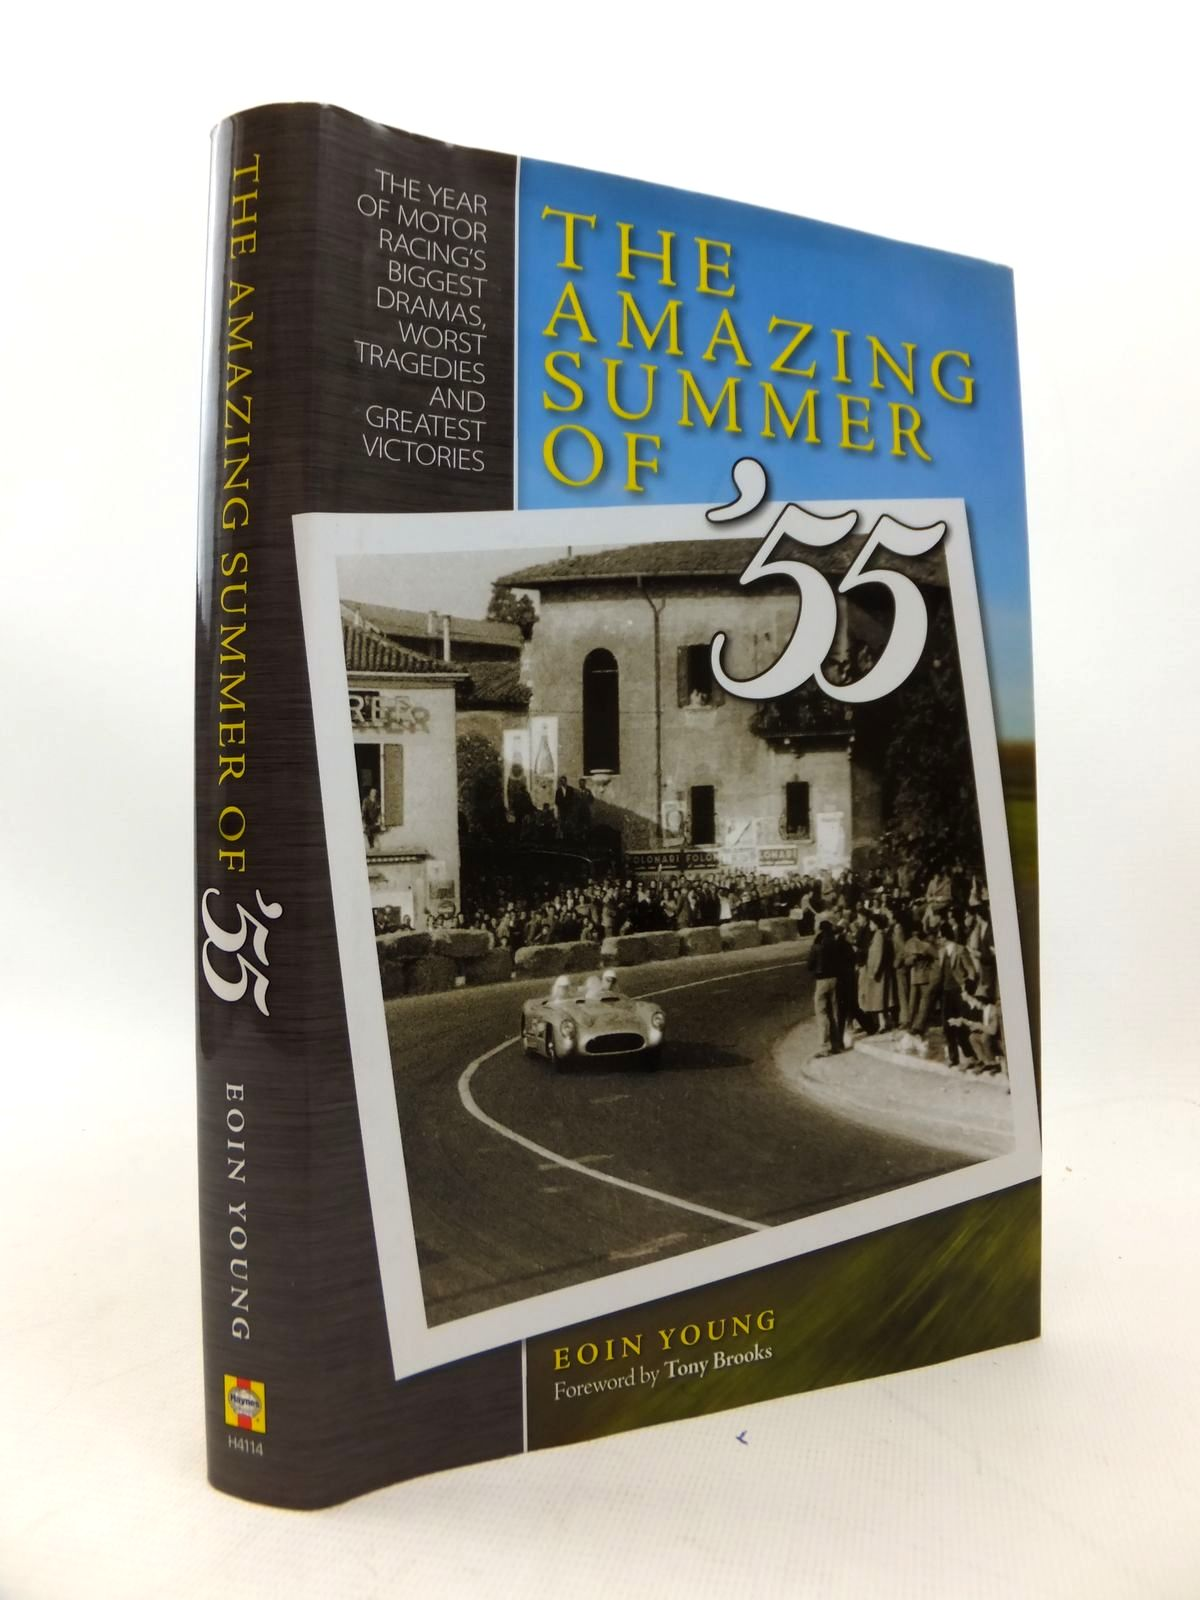 Photo of THE AMAZING SUMMER OF '55: THE YEAR OF MOTOR RACING'S BIGGEST DRAMAS, WORST TRAGEDIES AND GREATEST VICTORIES written by Young, Eoin published by Haynes Publishing Group (STOCK CODE: 1814079)  for sale by Stella & Rose's Books